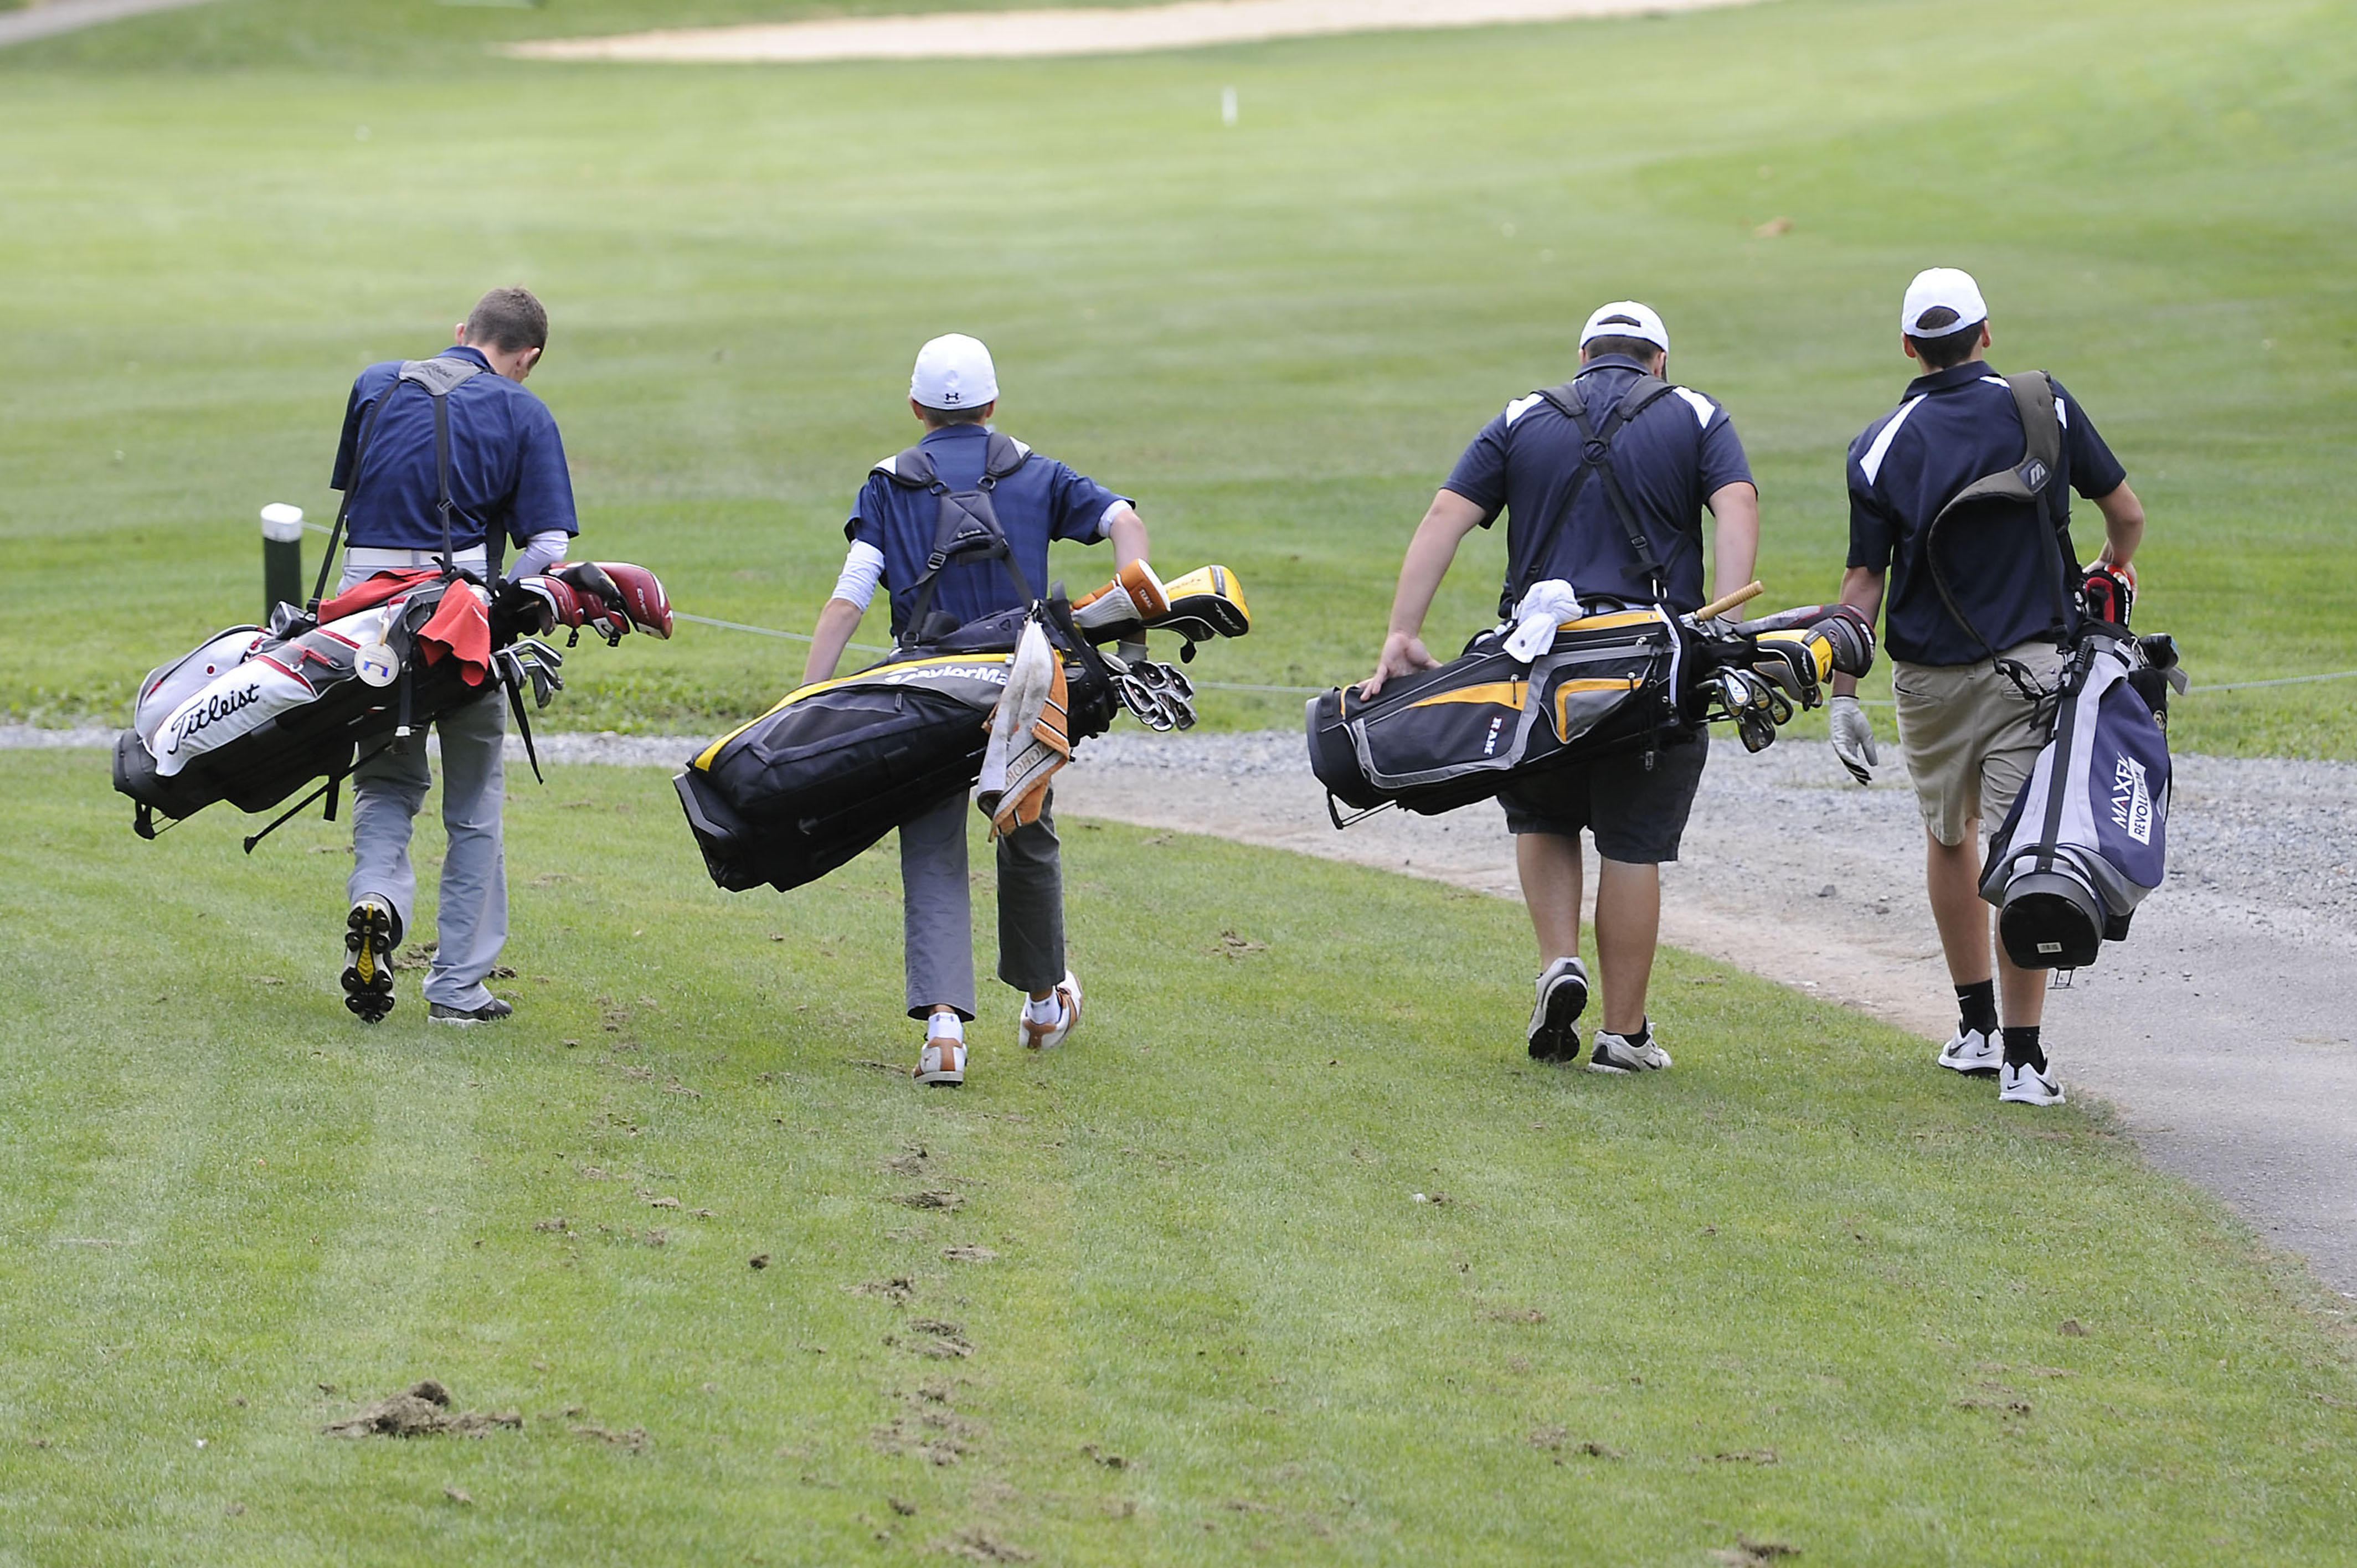 4 golfers walking with clubs